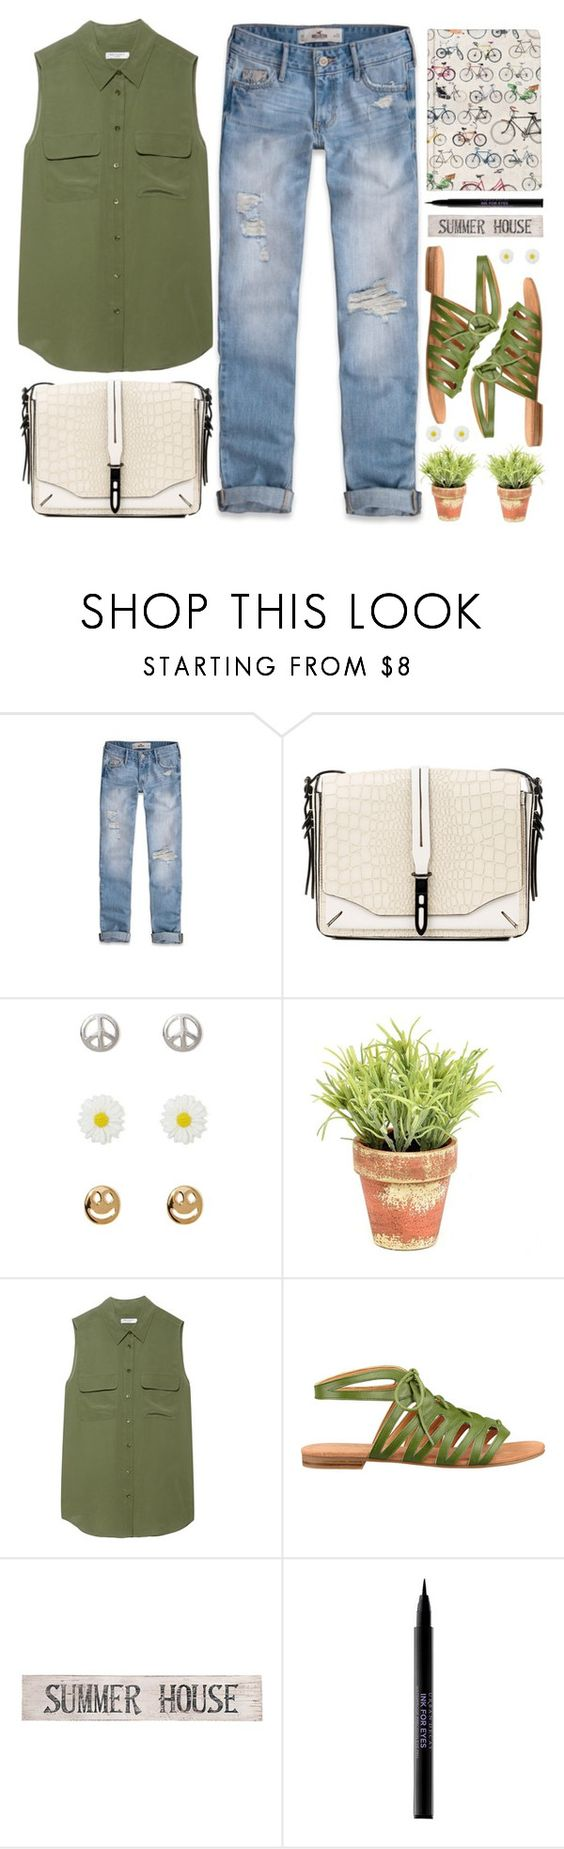 """""""Summer House"""" by allamess ❤ liked on Polyvore featuring Hollister Co., rag & bone, Alexia Crawford, Ella Doran, Equipment, Nine West, Pottery Barn and Urban Decay"""